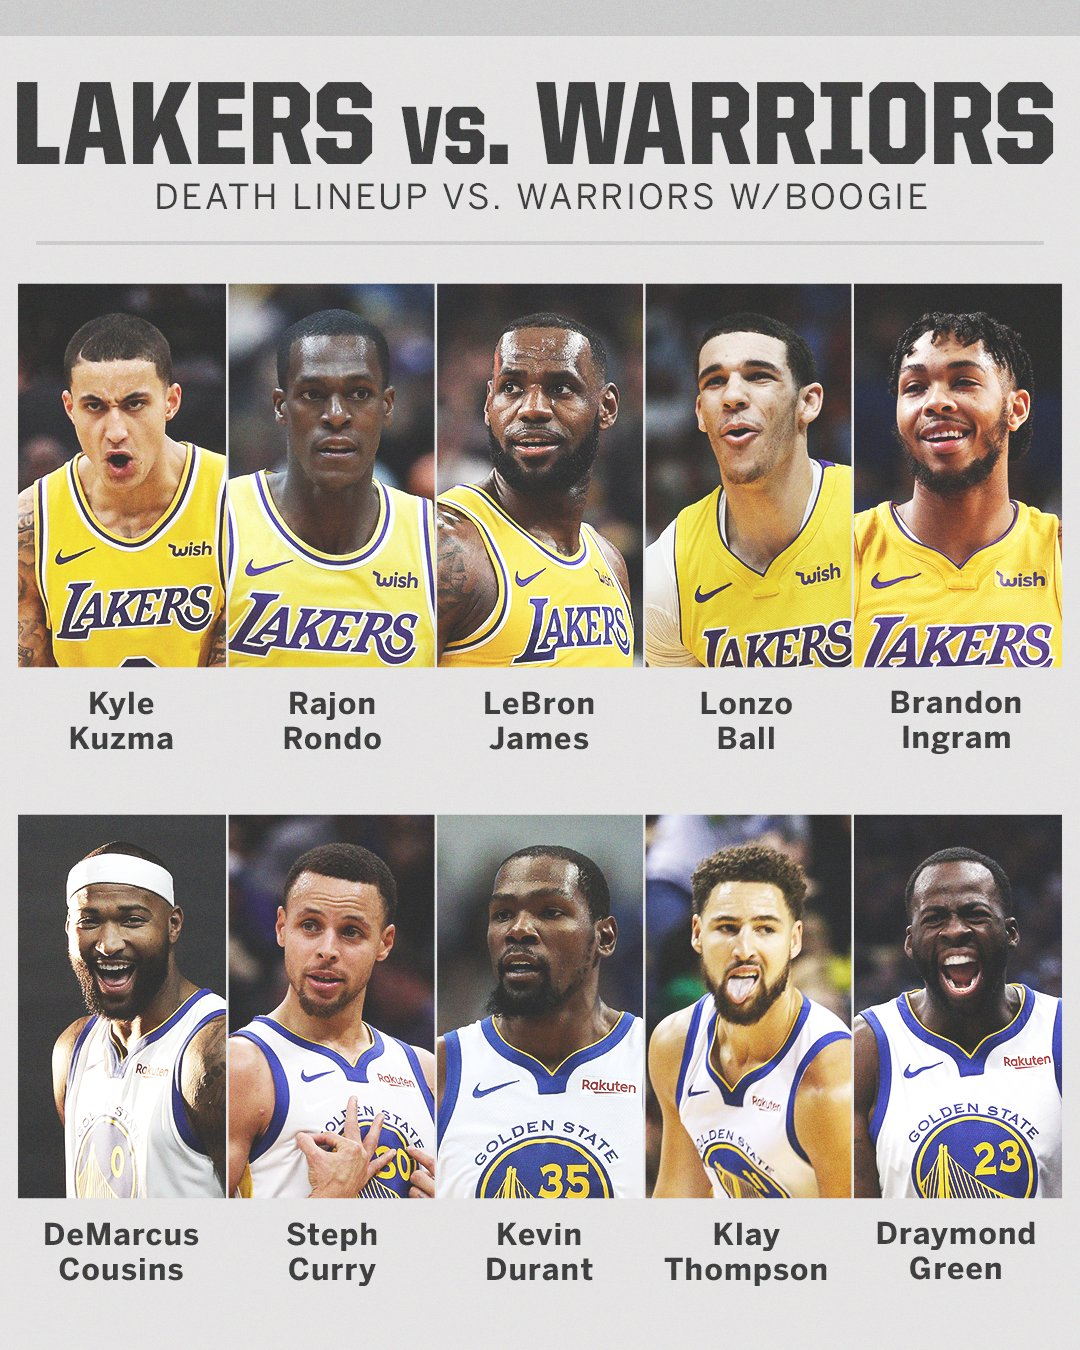 Could Kyle Kuzma's 'death lineup' take down the Warriors once they get Boogie back? https://t.co/W0Jh7nrU1T